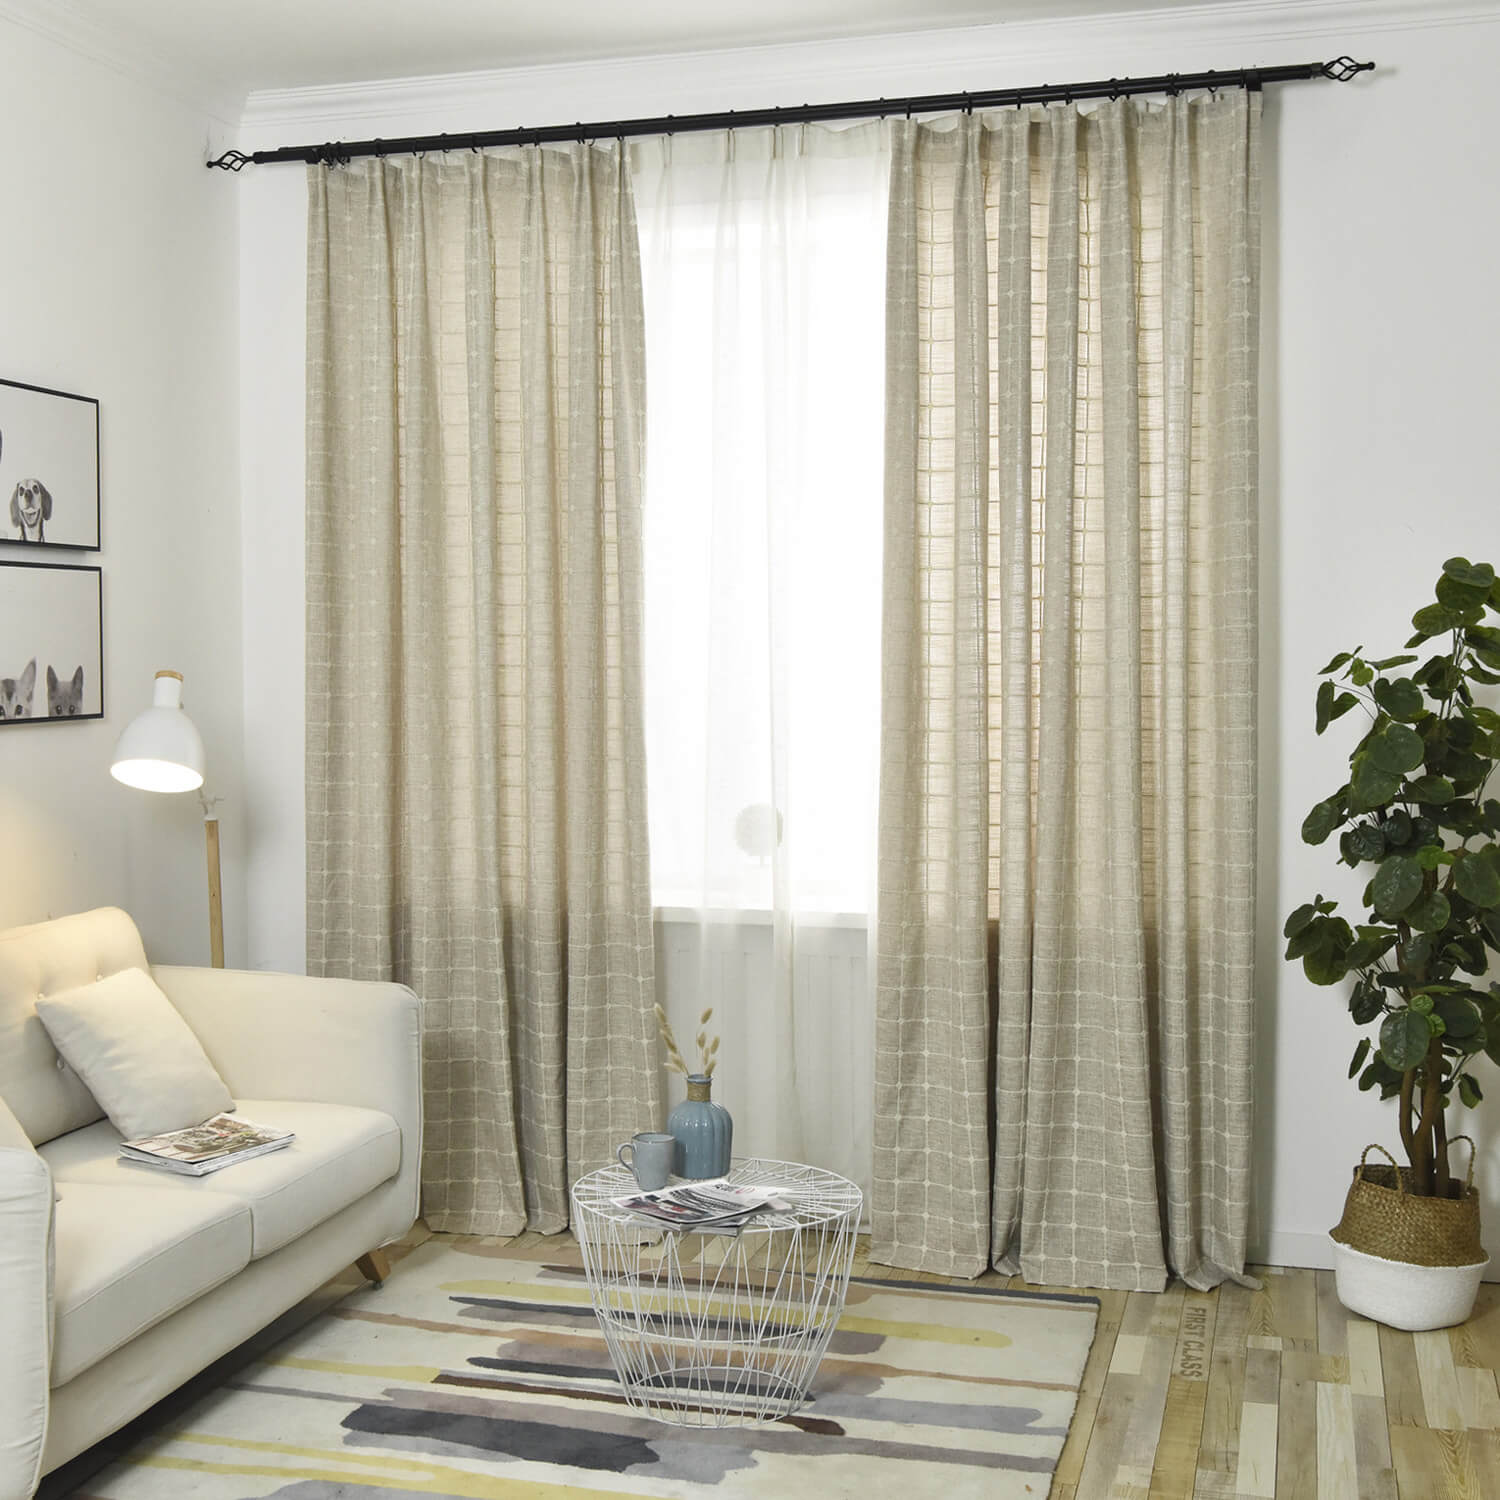 Plaid Embroidered Natural Linen Curtains for Living Room